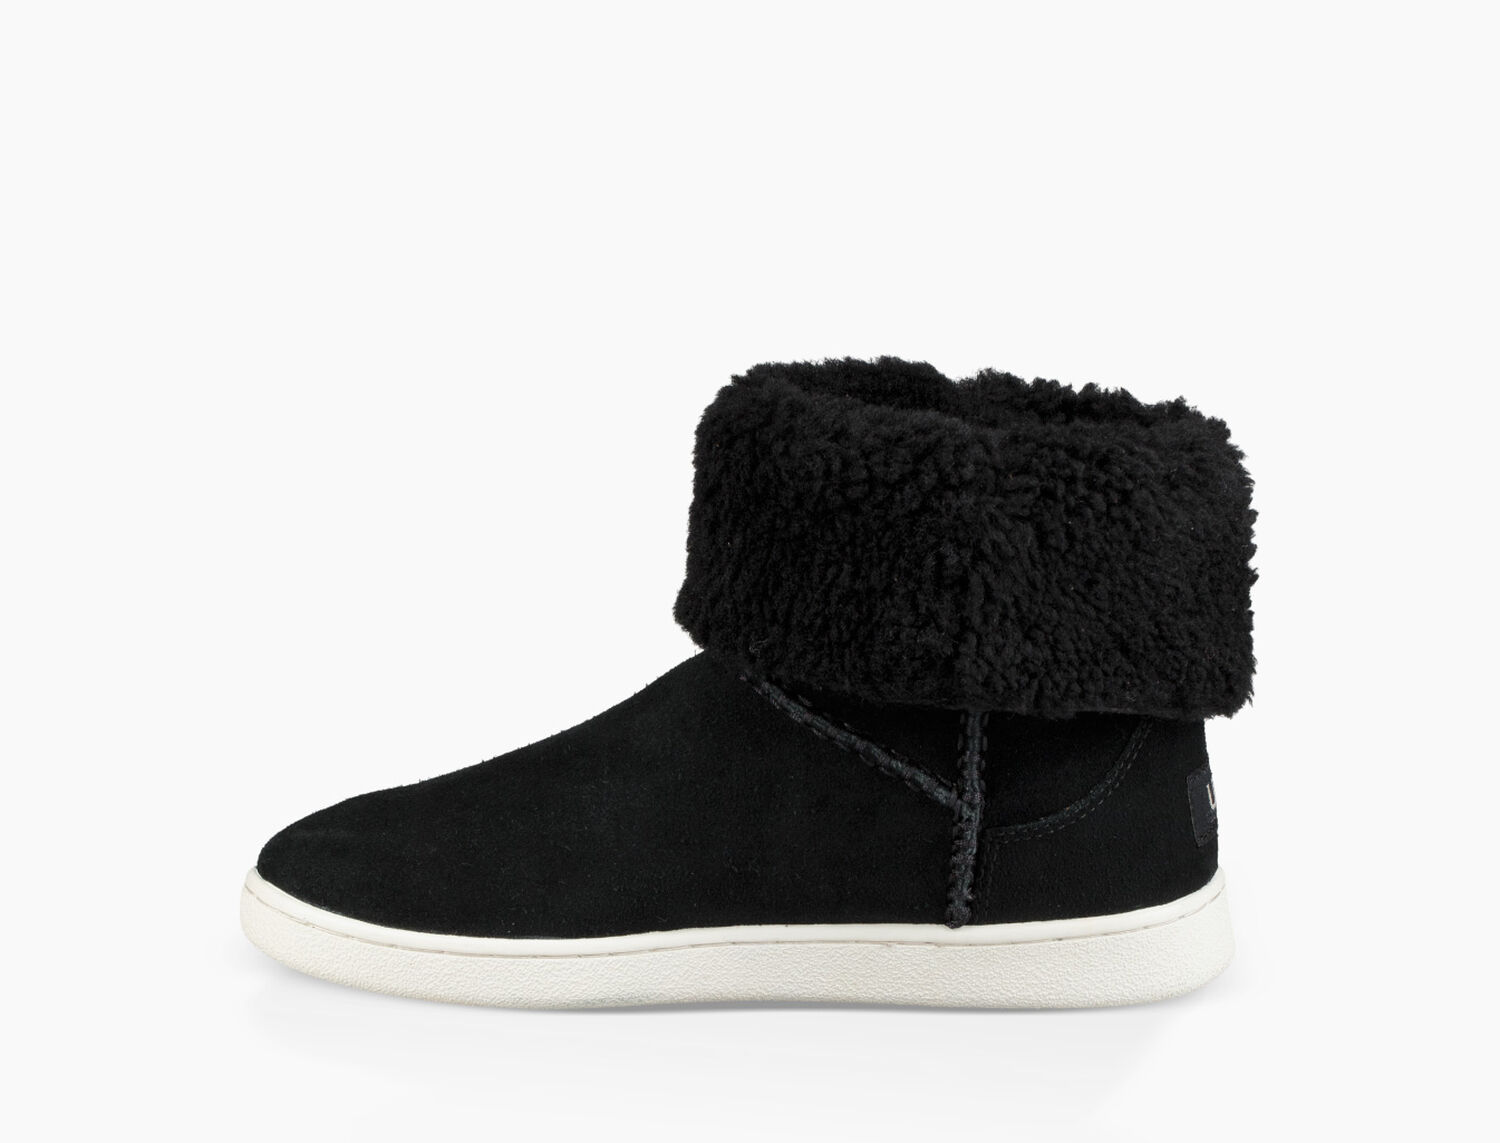 68bb9d6417c Women's Share this product Mika Classic Sneaker